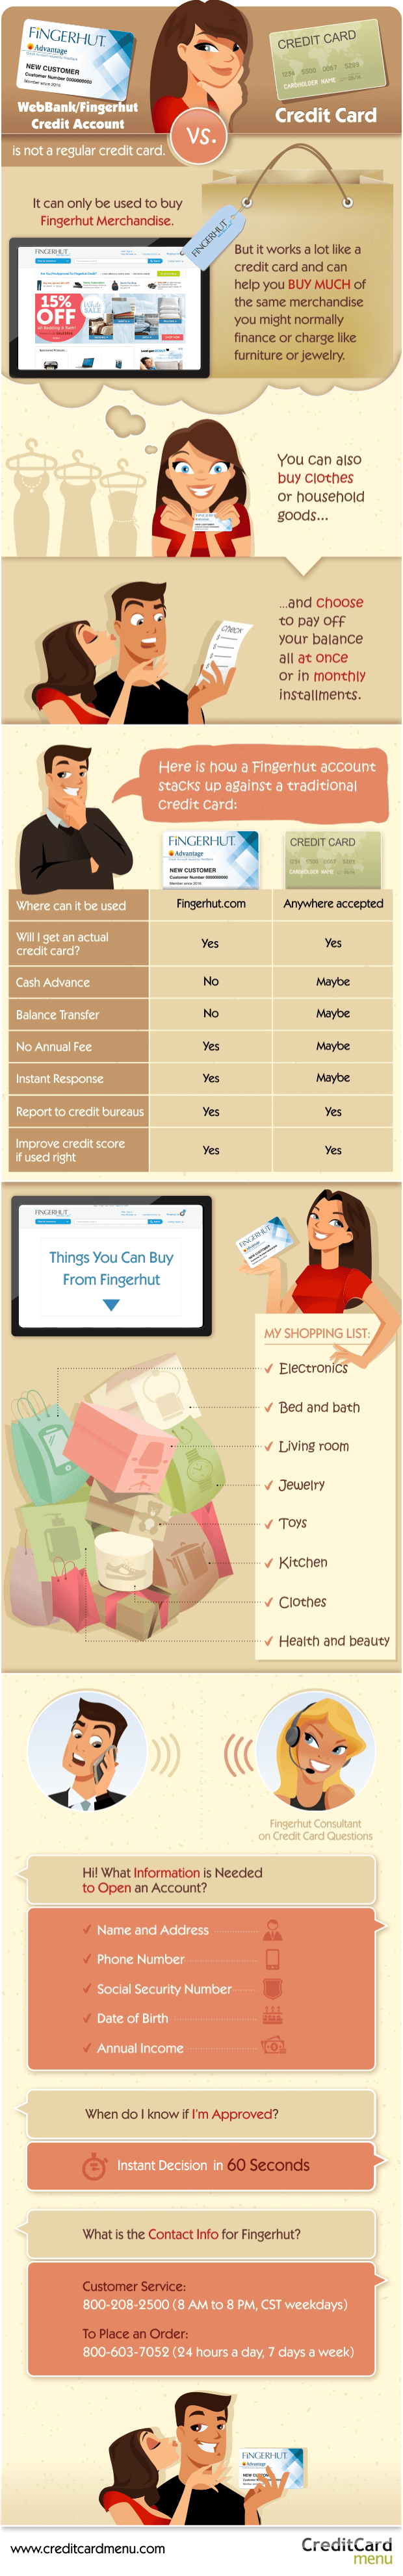 Fingerhut Credit Account Infographic